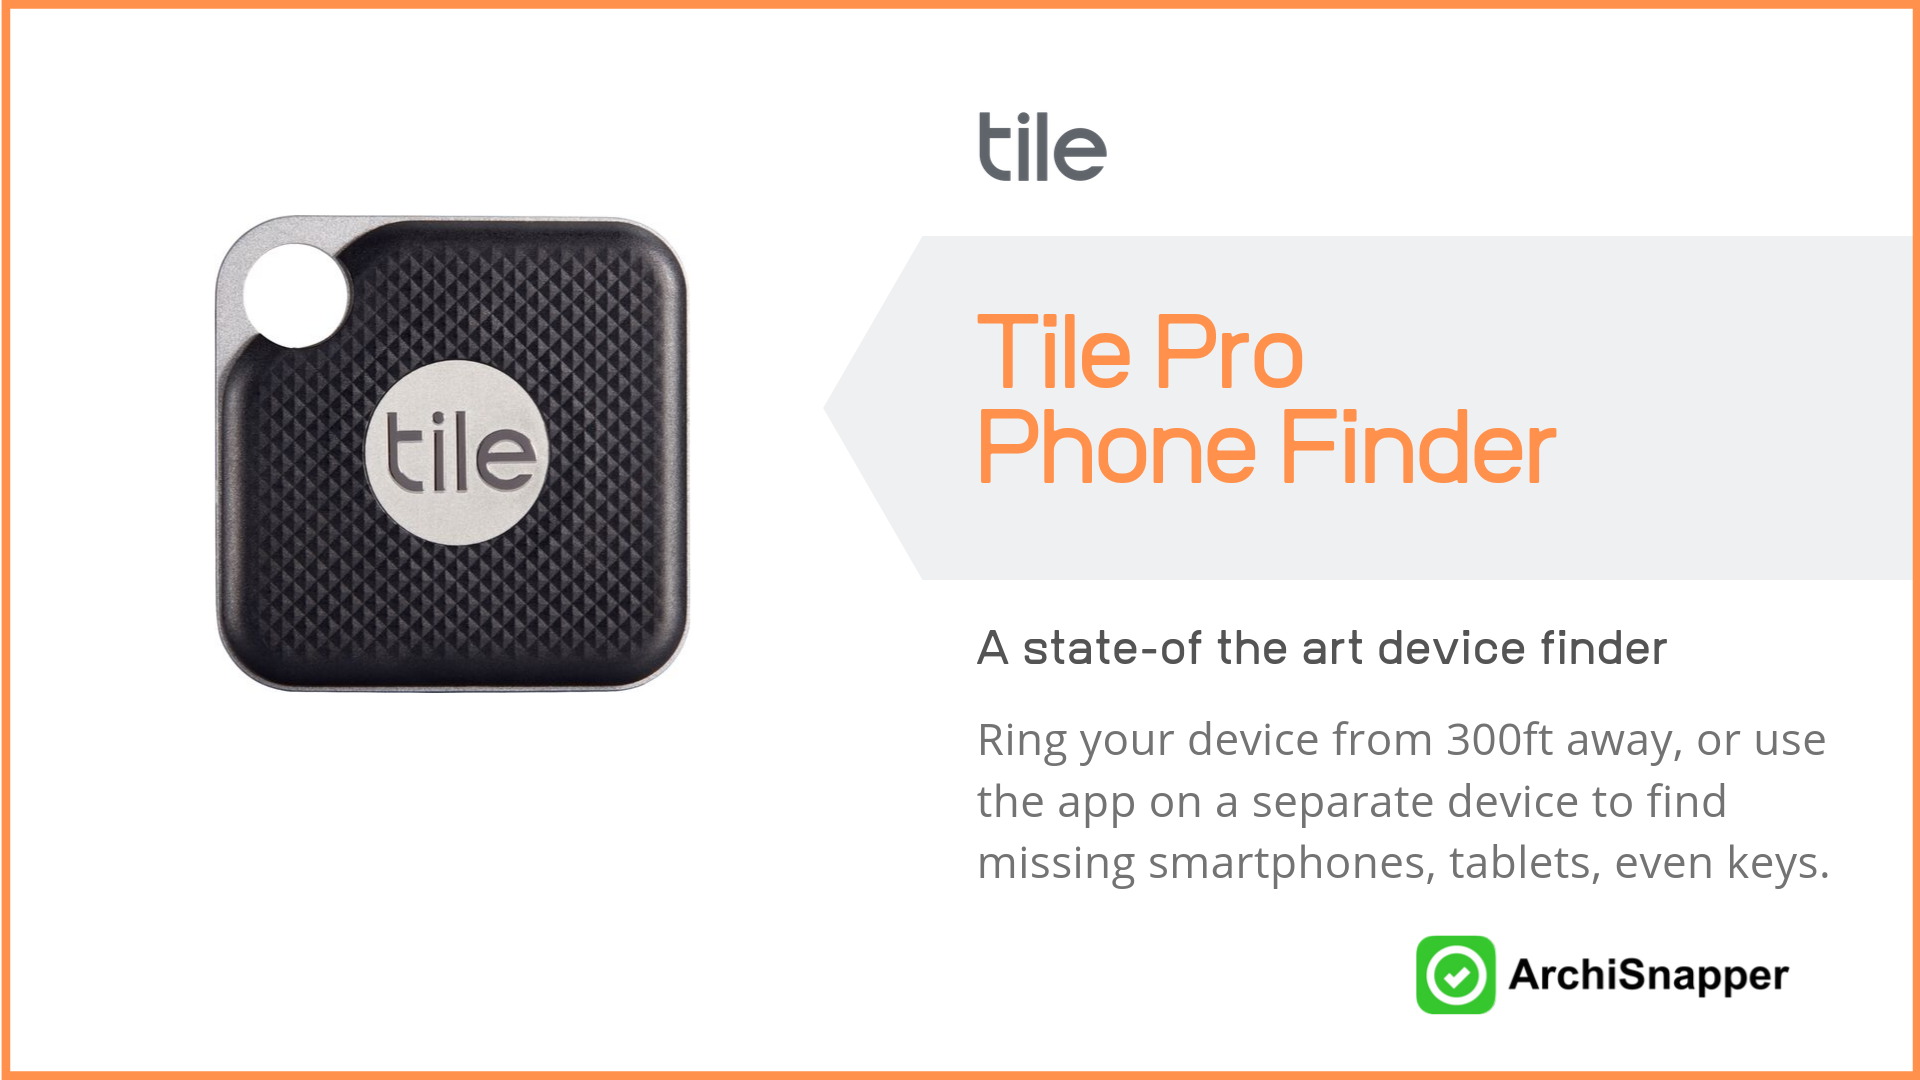 Tile Pro Phone Finder | Top Tech for Architects Presented by Archisnapper.